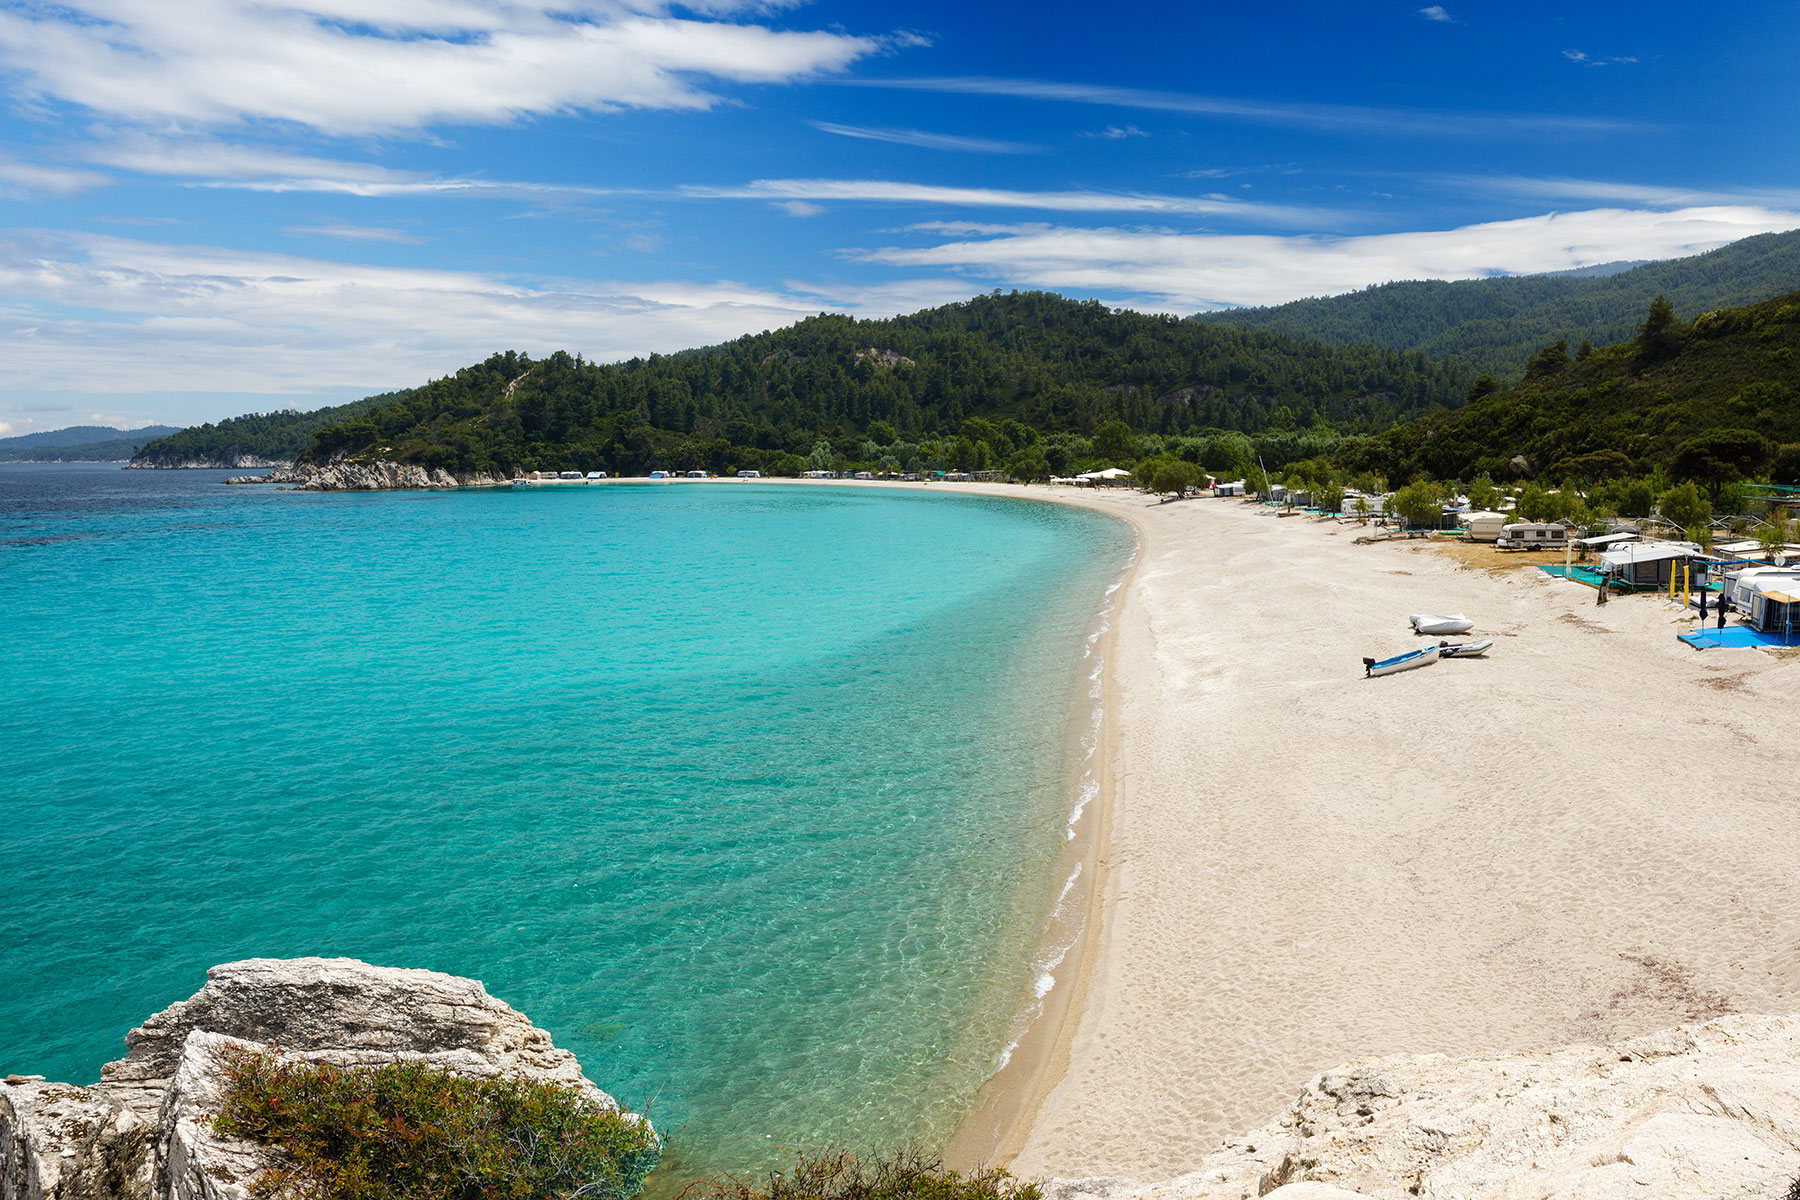 Armenistis beach in Halkidiki, Greece